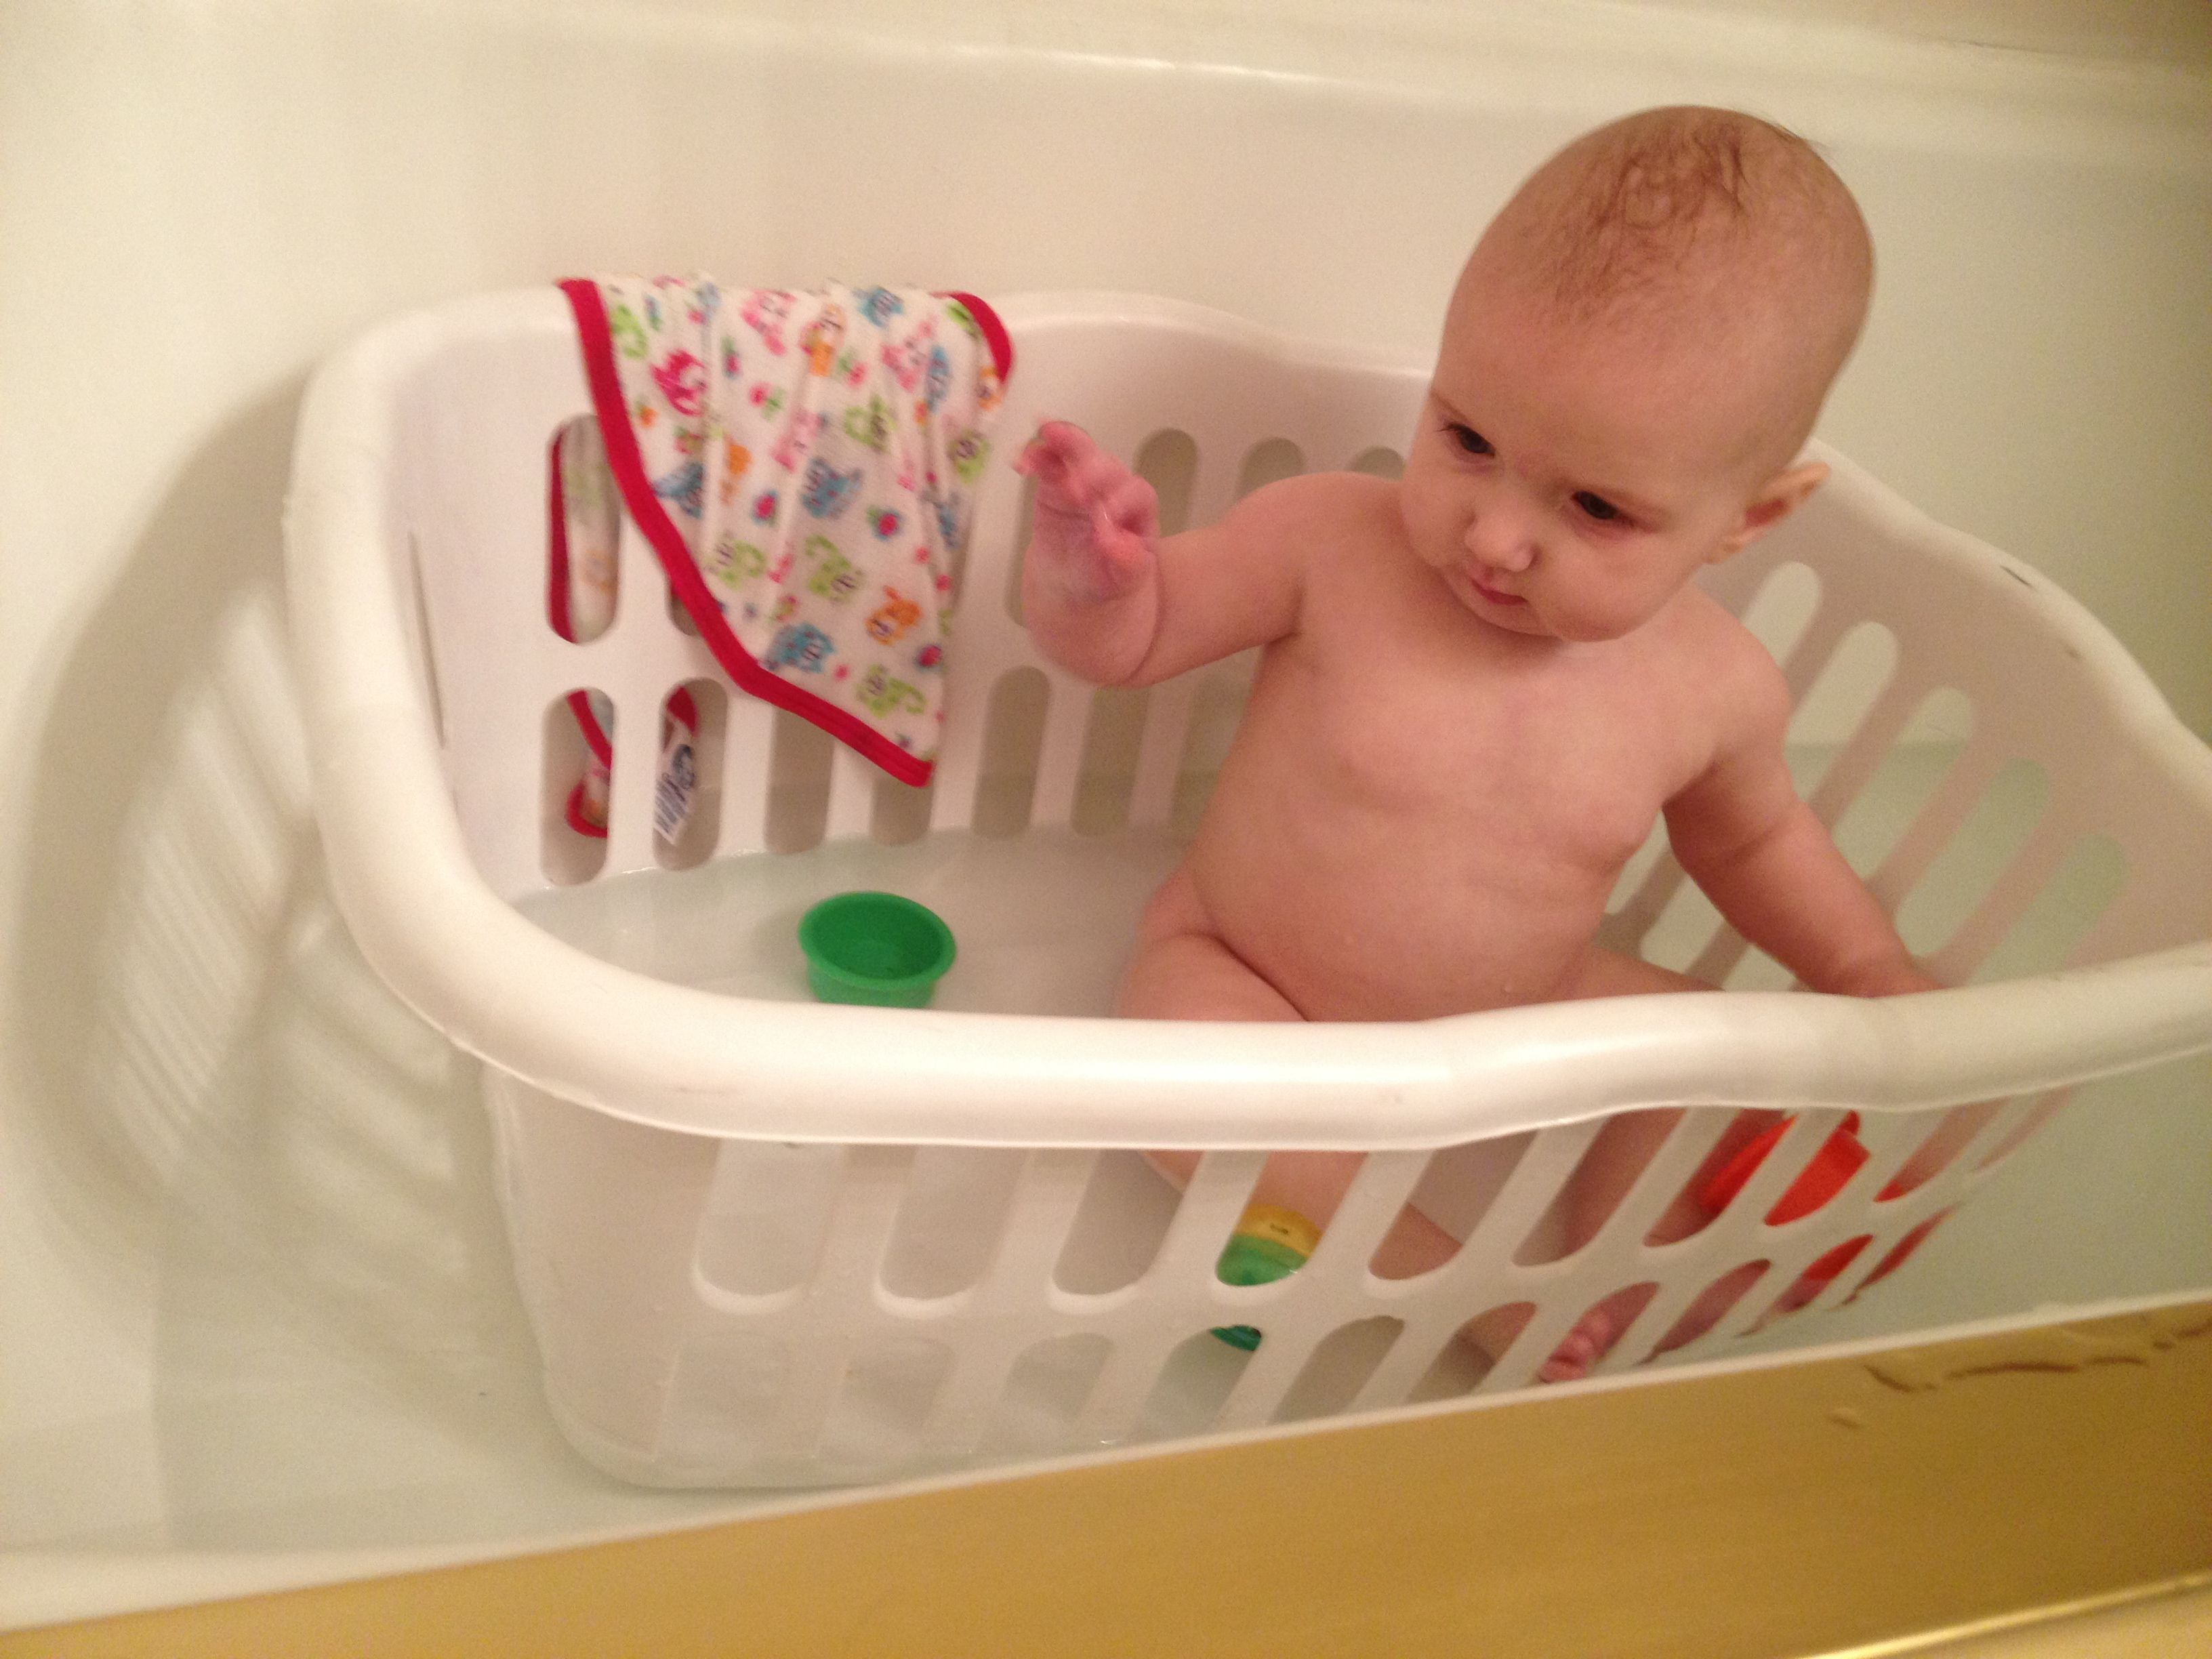 Use a laundry basket as a nonslip baby bath awesome idea tried this with my great niece it worked out great it gave her a safe small area to play in